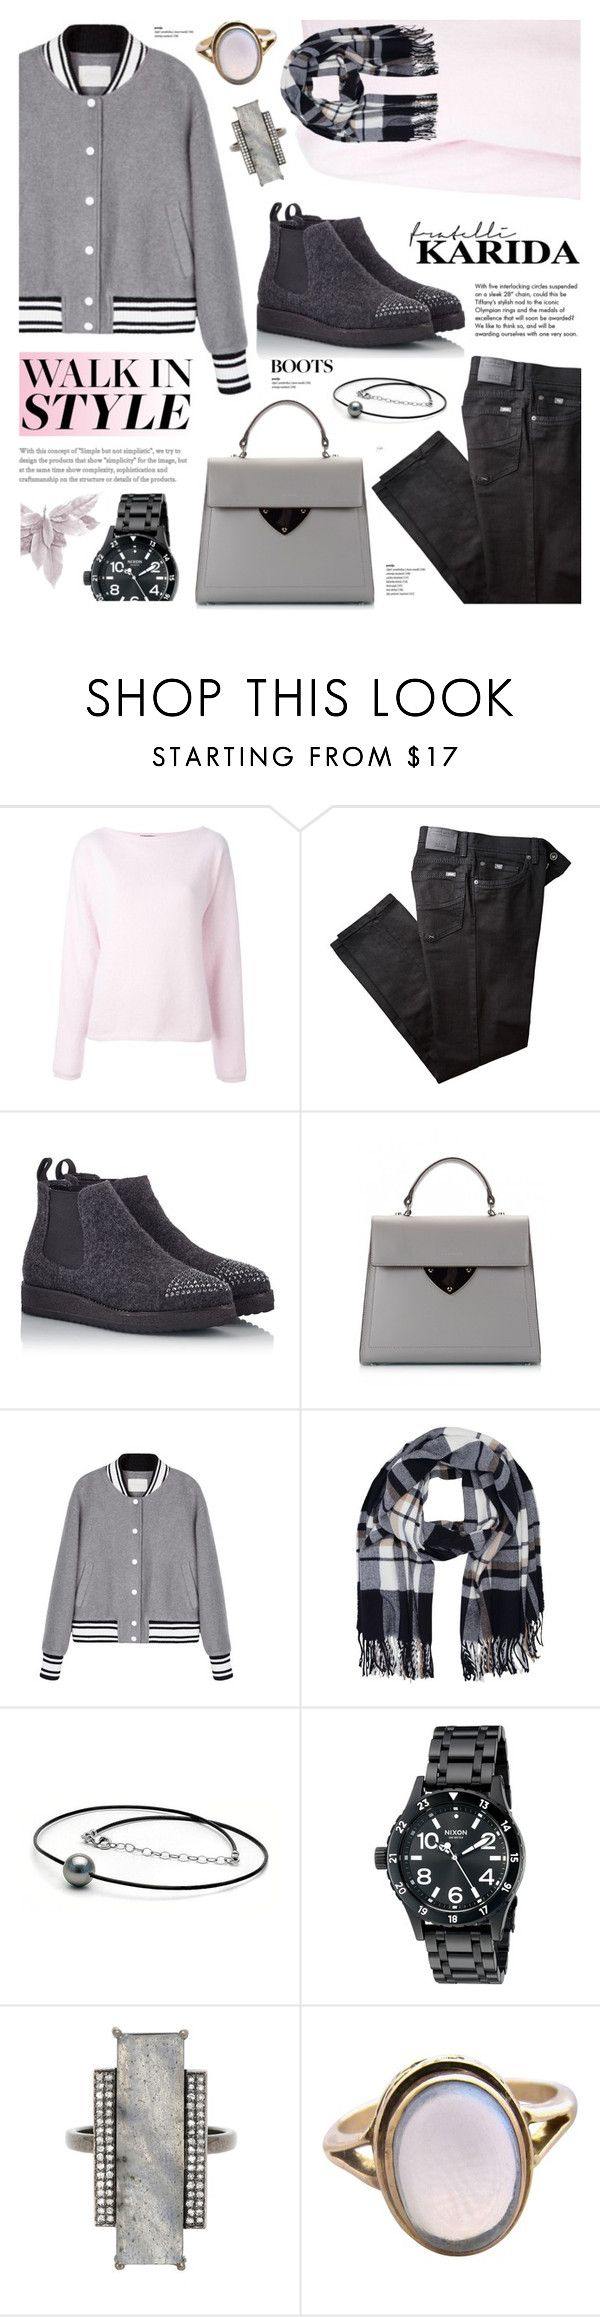 Chelsea Boots - Fratelli Karida 2 by cly88 on Polyvore featuring Balmain, BRAX, Eddy Daniele, Coccinelle, Nixon, ADORNIA, M&Co and Tiffany & Co.